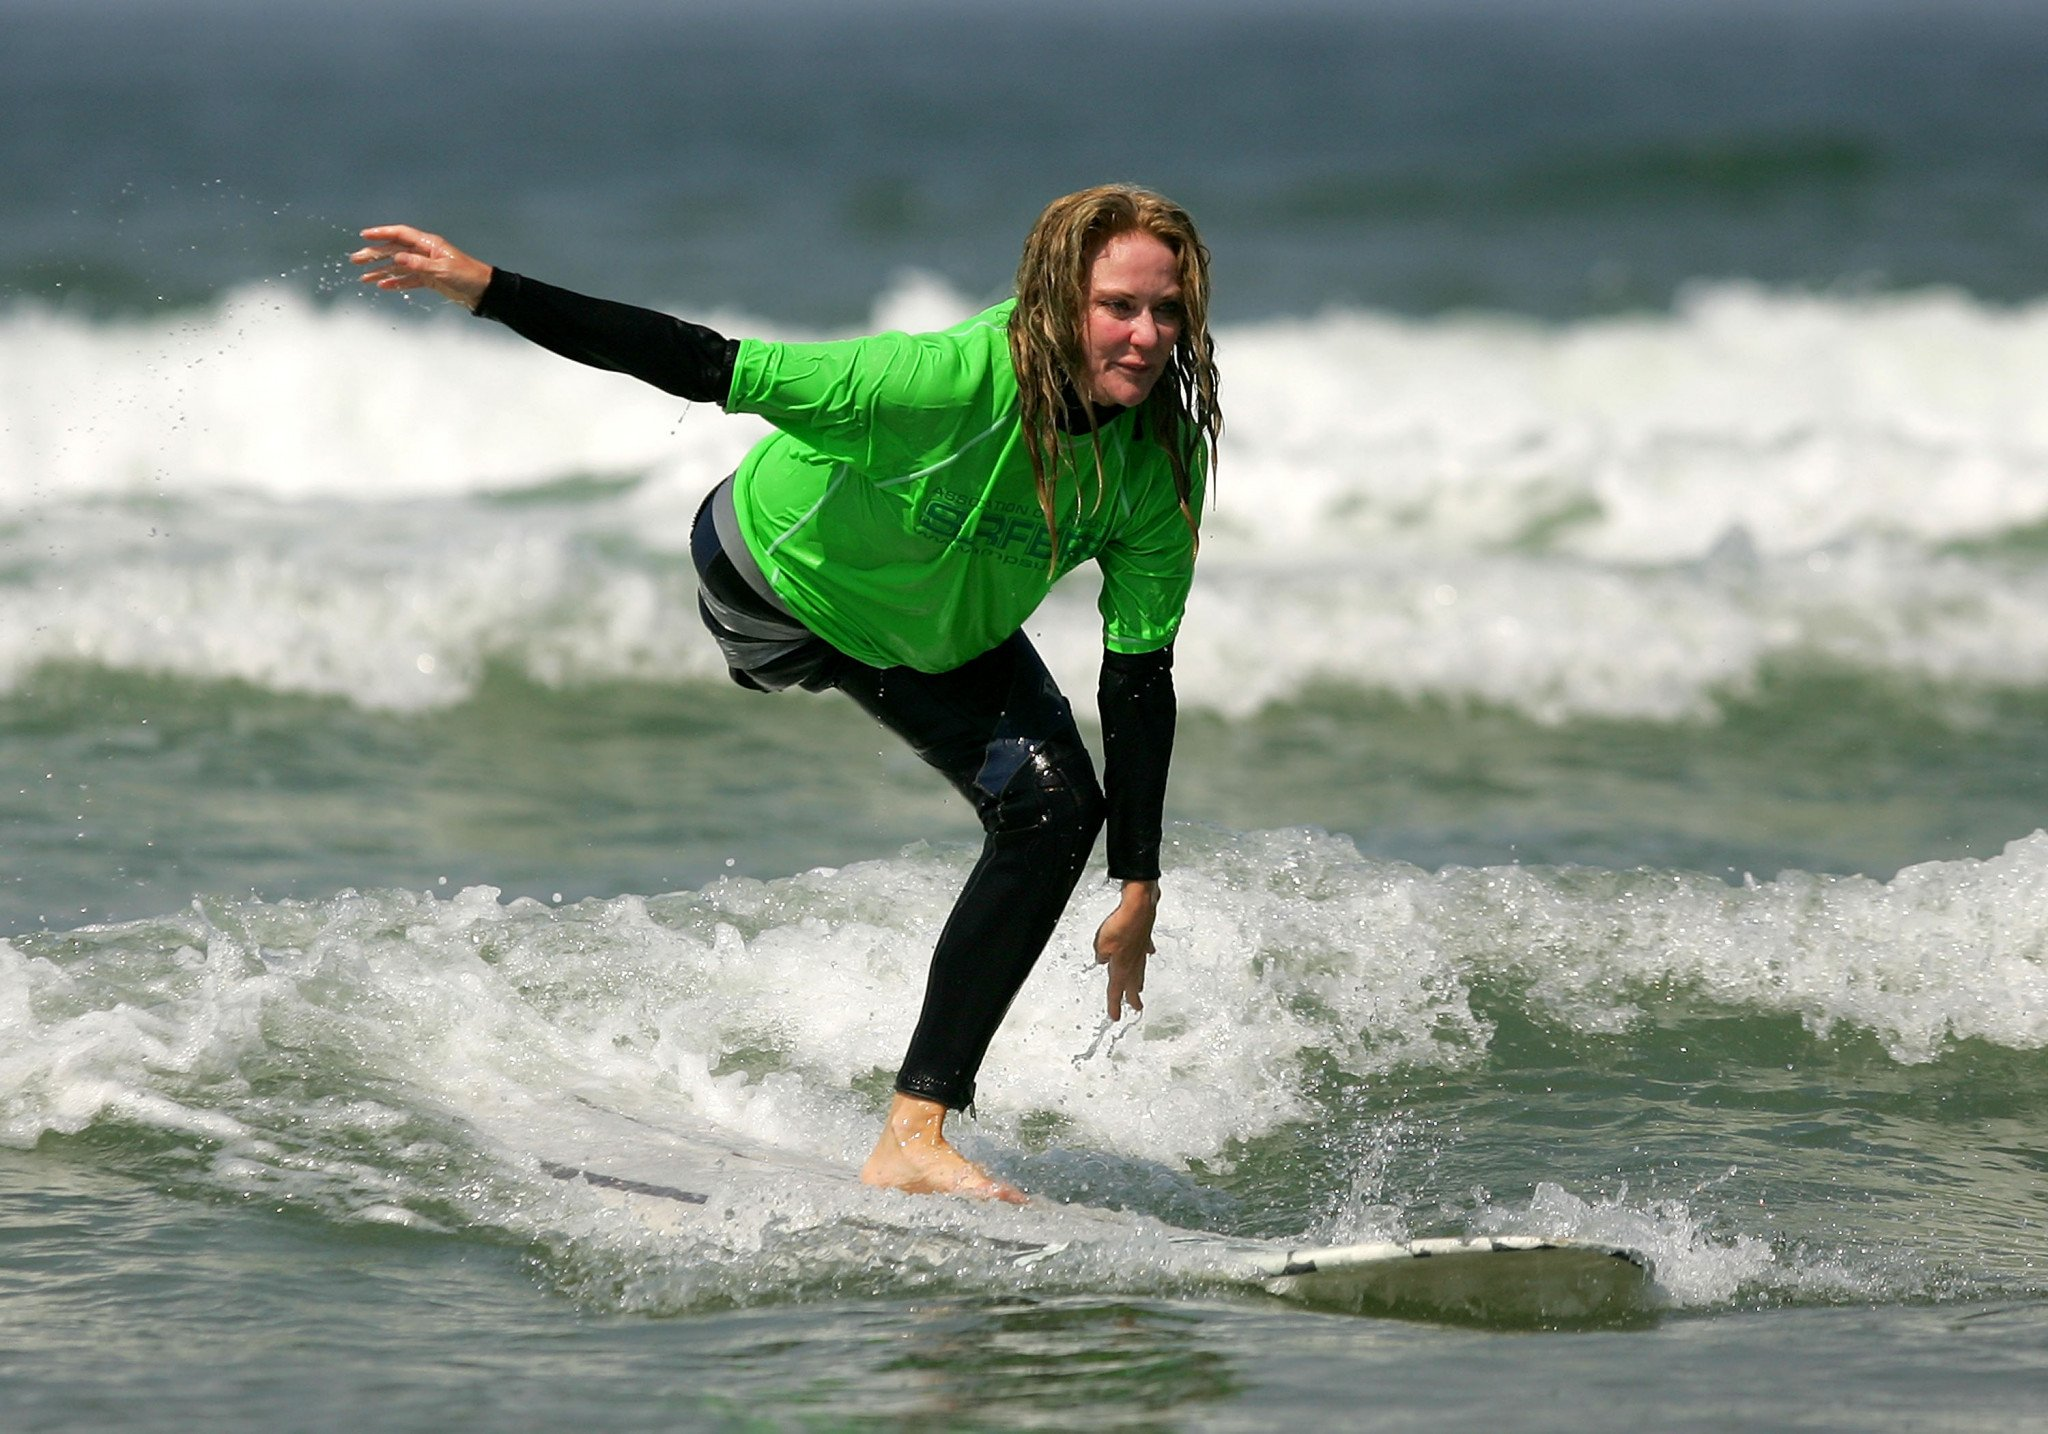 The International Surfing Association are aiming for Paralympic inclusion ©Getty Images